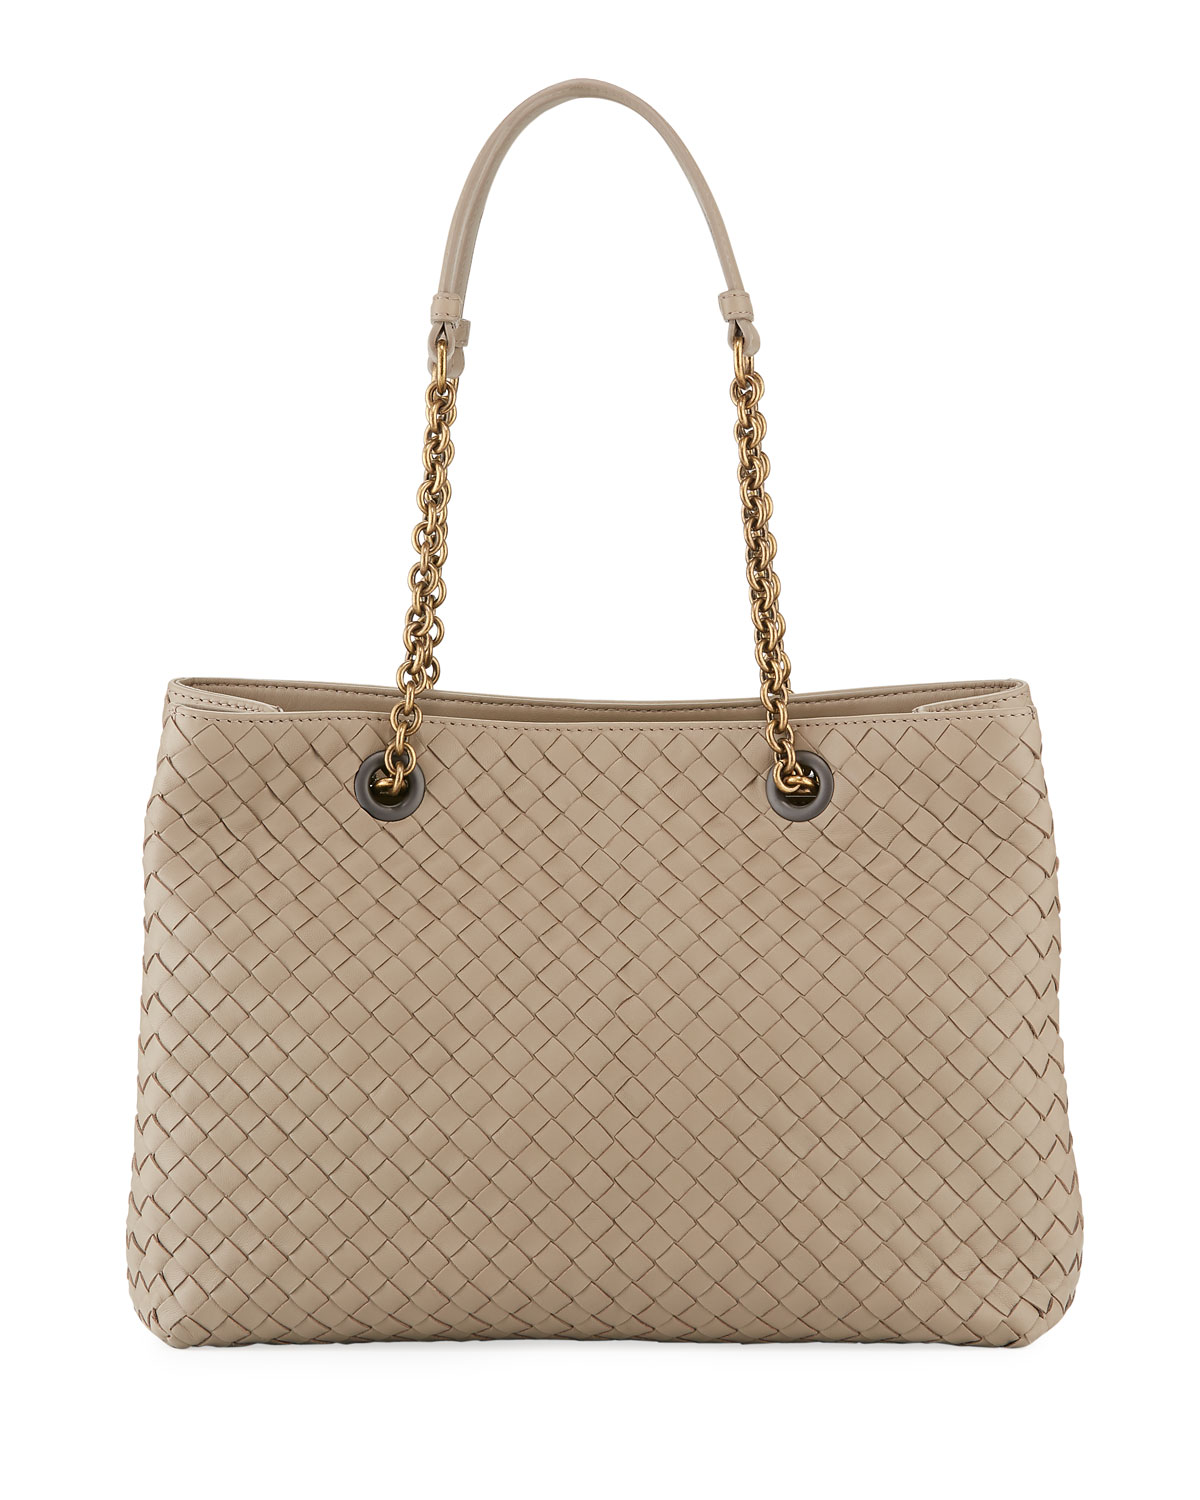 09859ab1a940 Bottega Veneta Intrecciato Medium Double-Chain Tote Bag